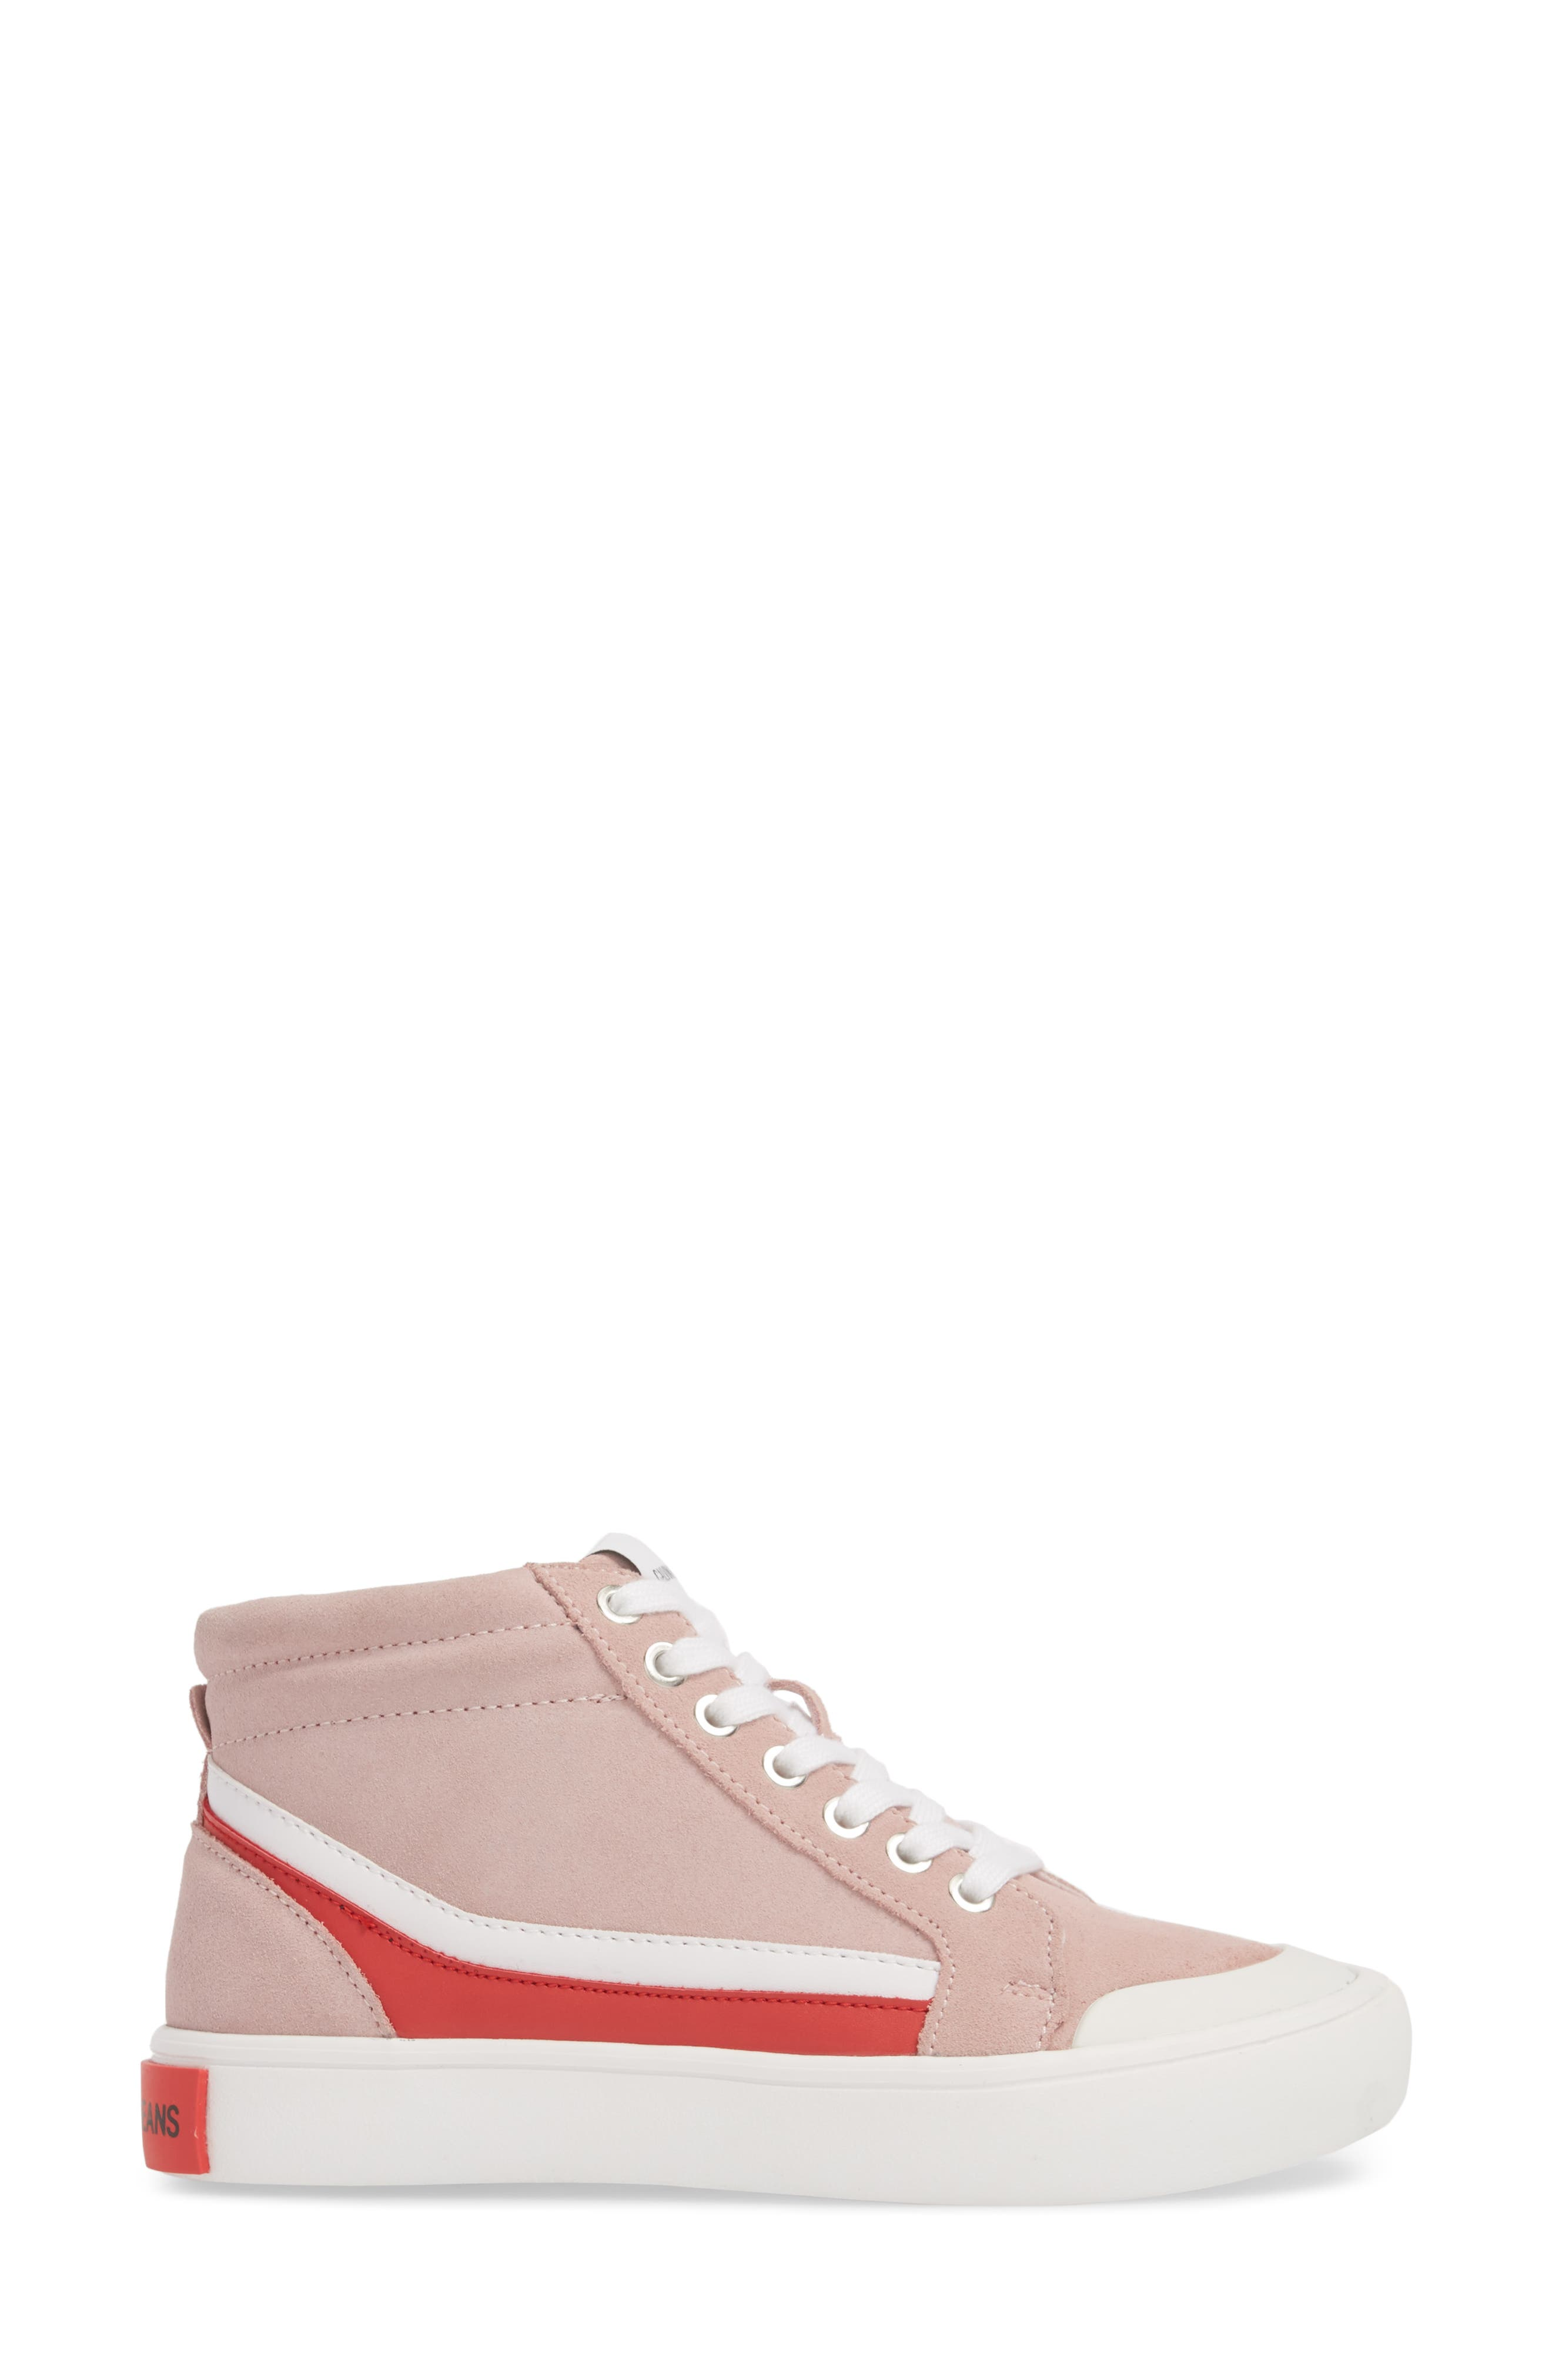 High Top Sneaker,                             Alternate thumbnail 3, color,                             Chintz Rose/ White/ Tomato